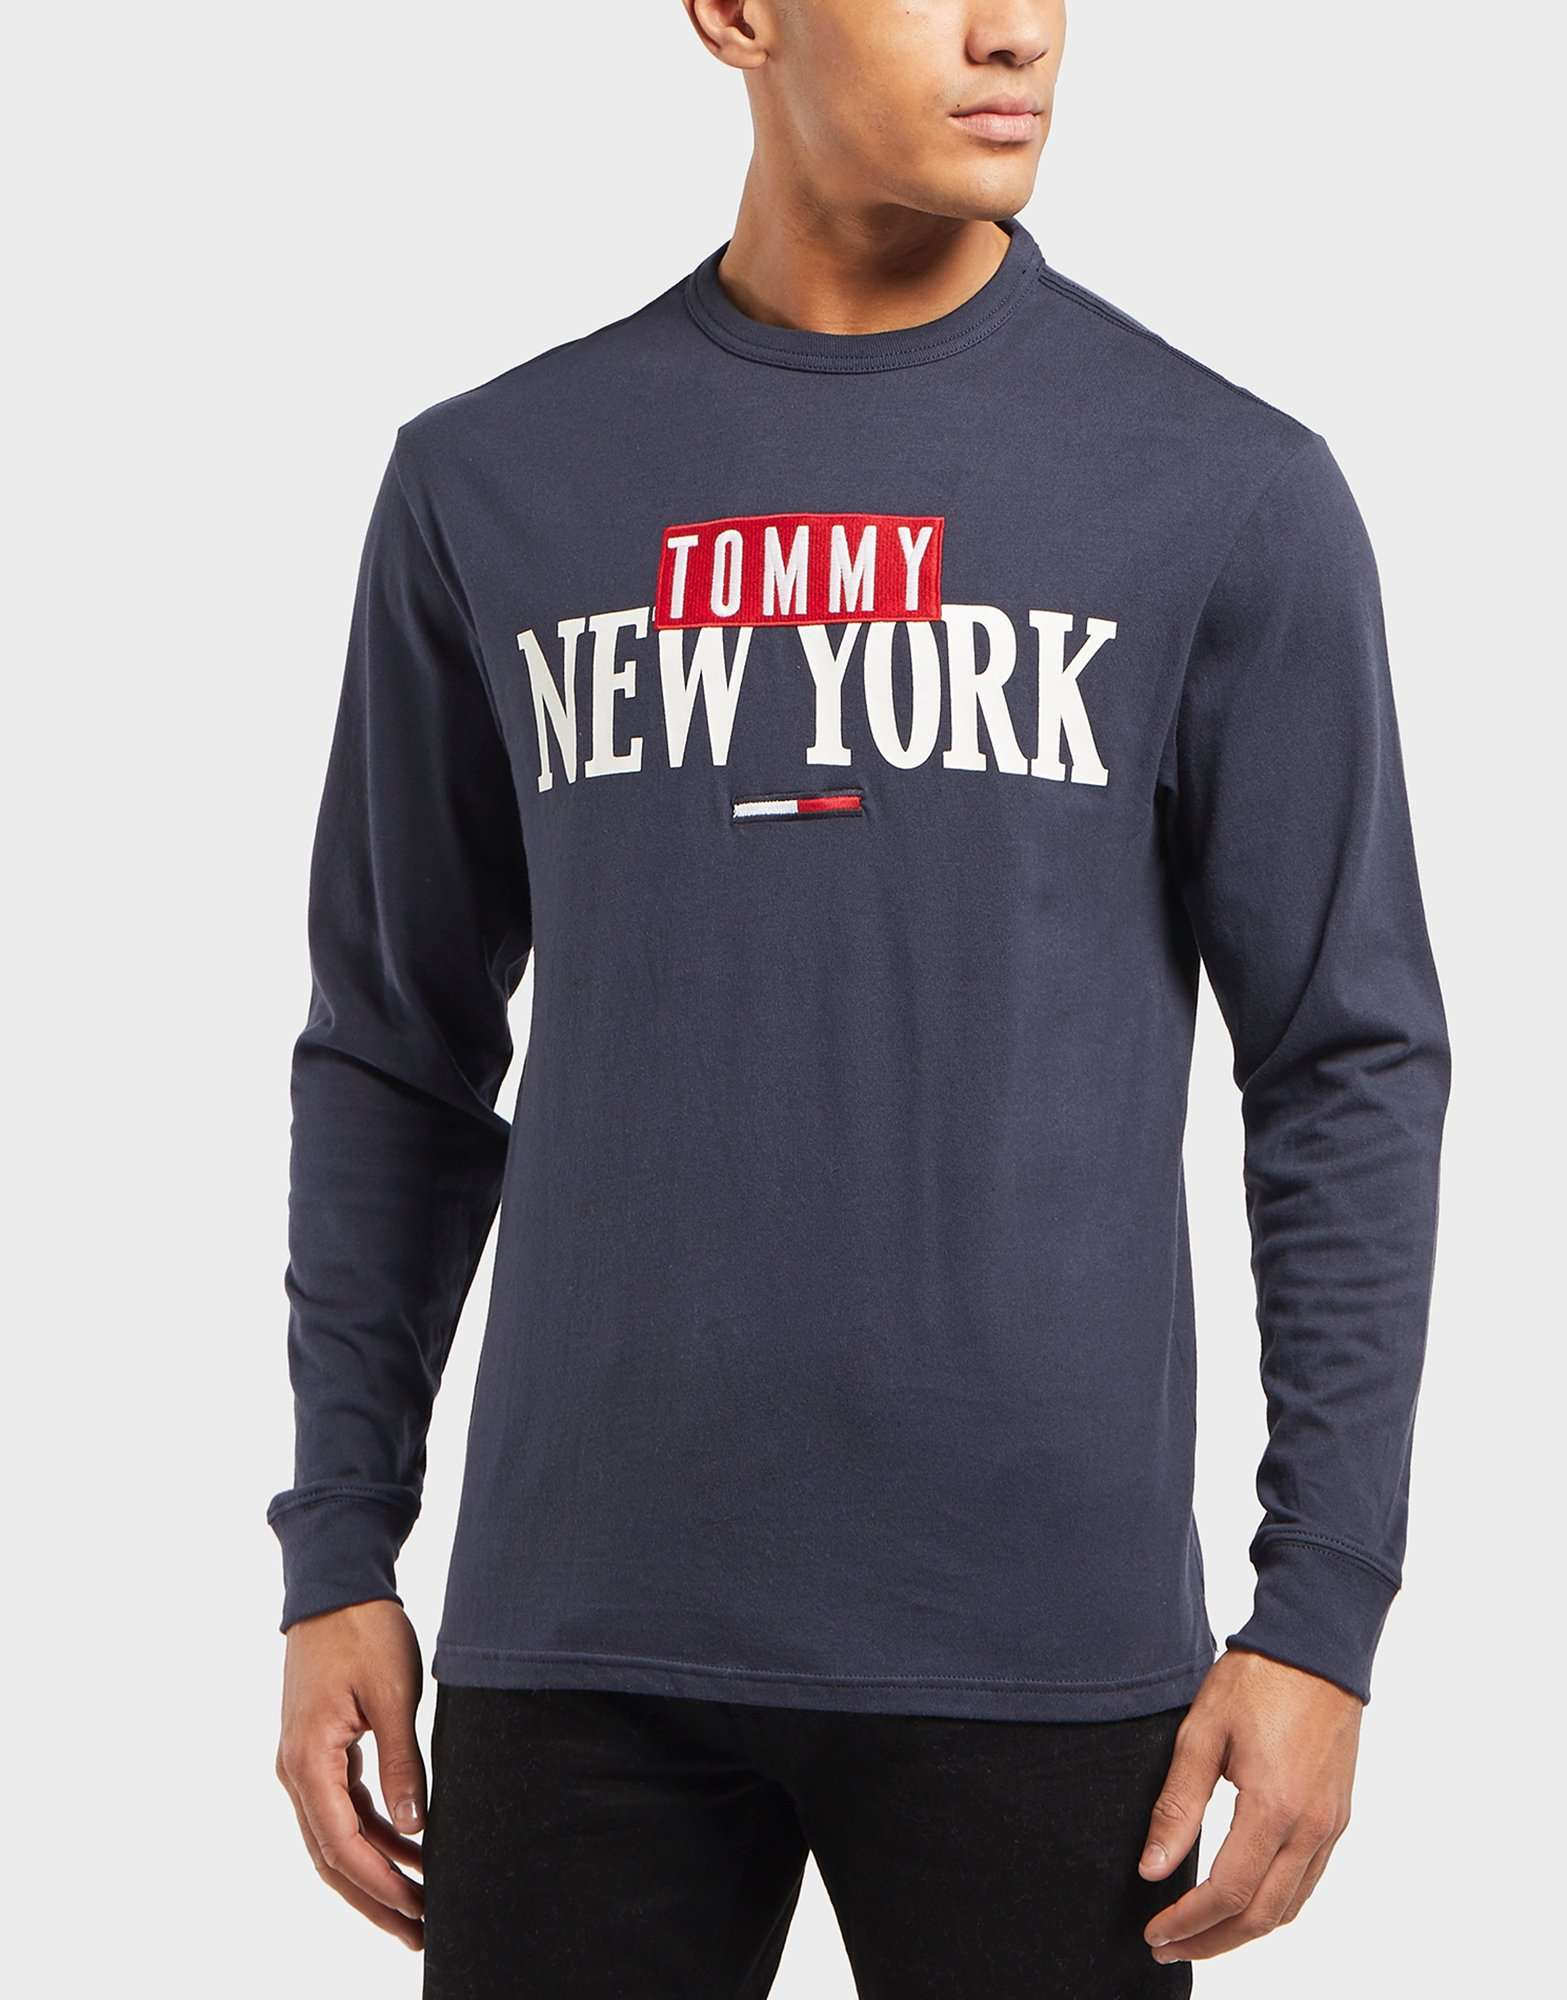 Tommy Jeans New York Long Sleeve T-Shirt  96894f5895ca